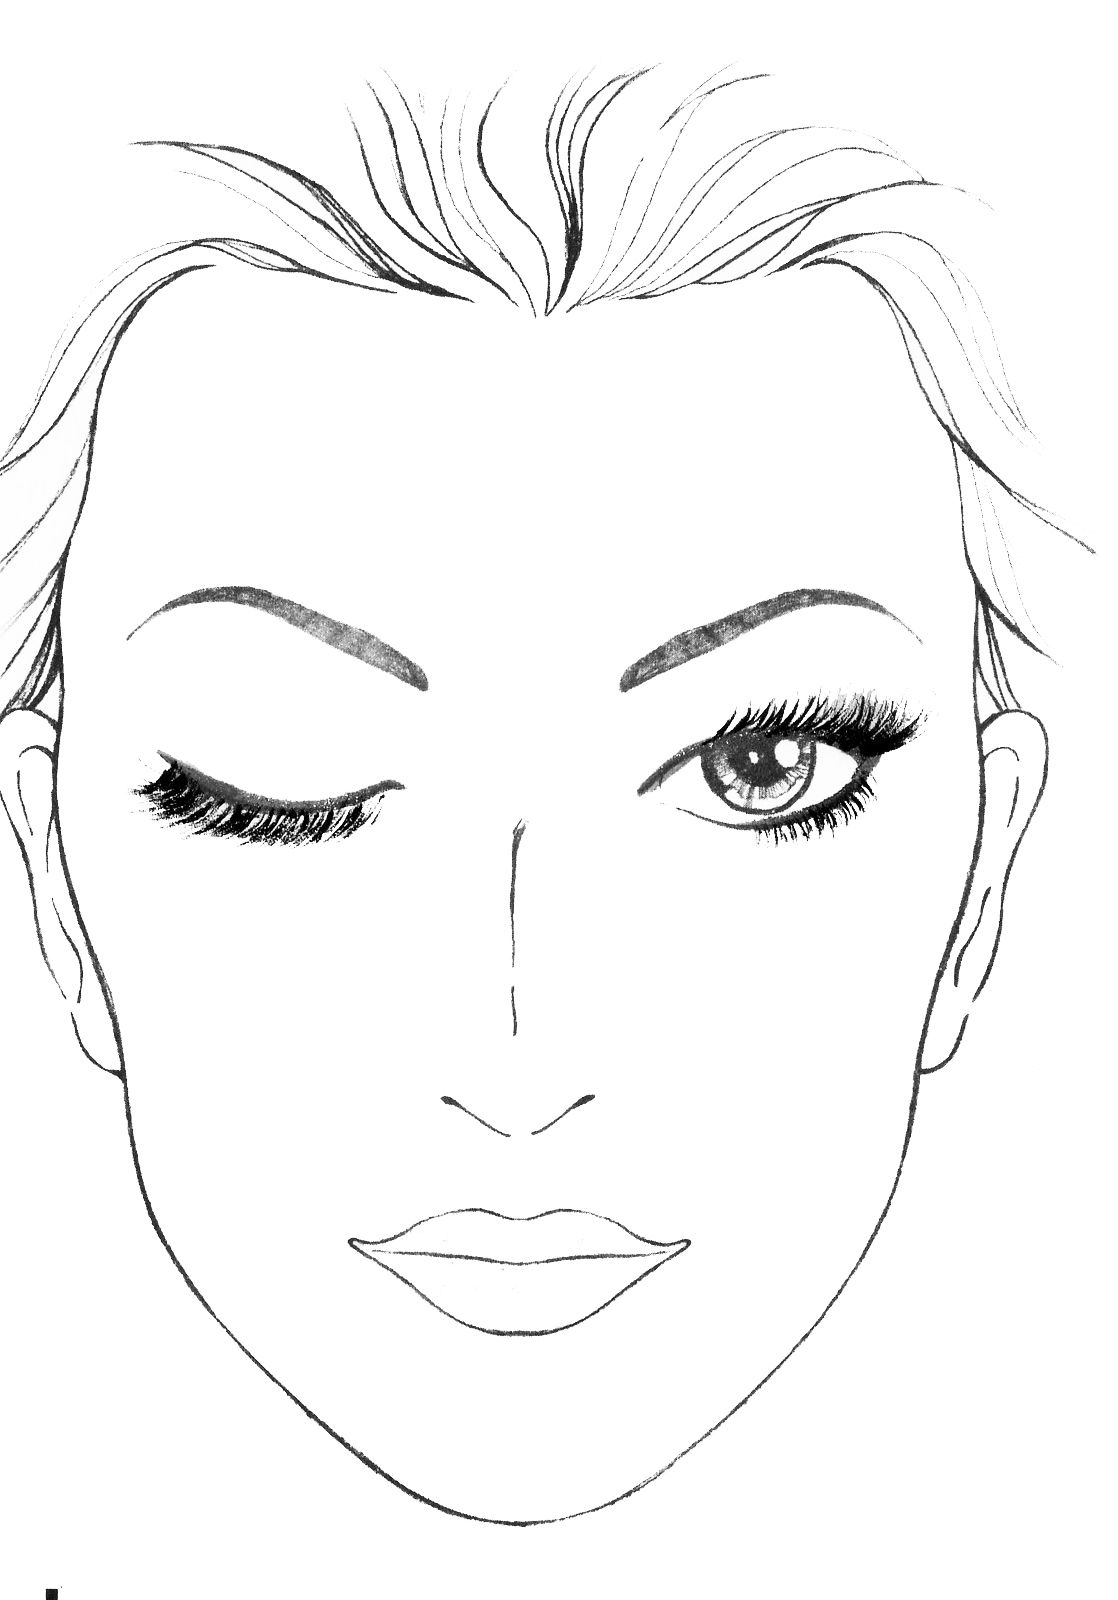 Blank Mac Face Charts Makeup Anarchist Pictures This Is Going To Be So Useful When Learning To